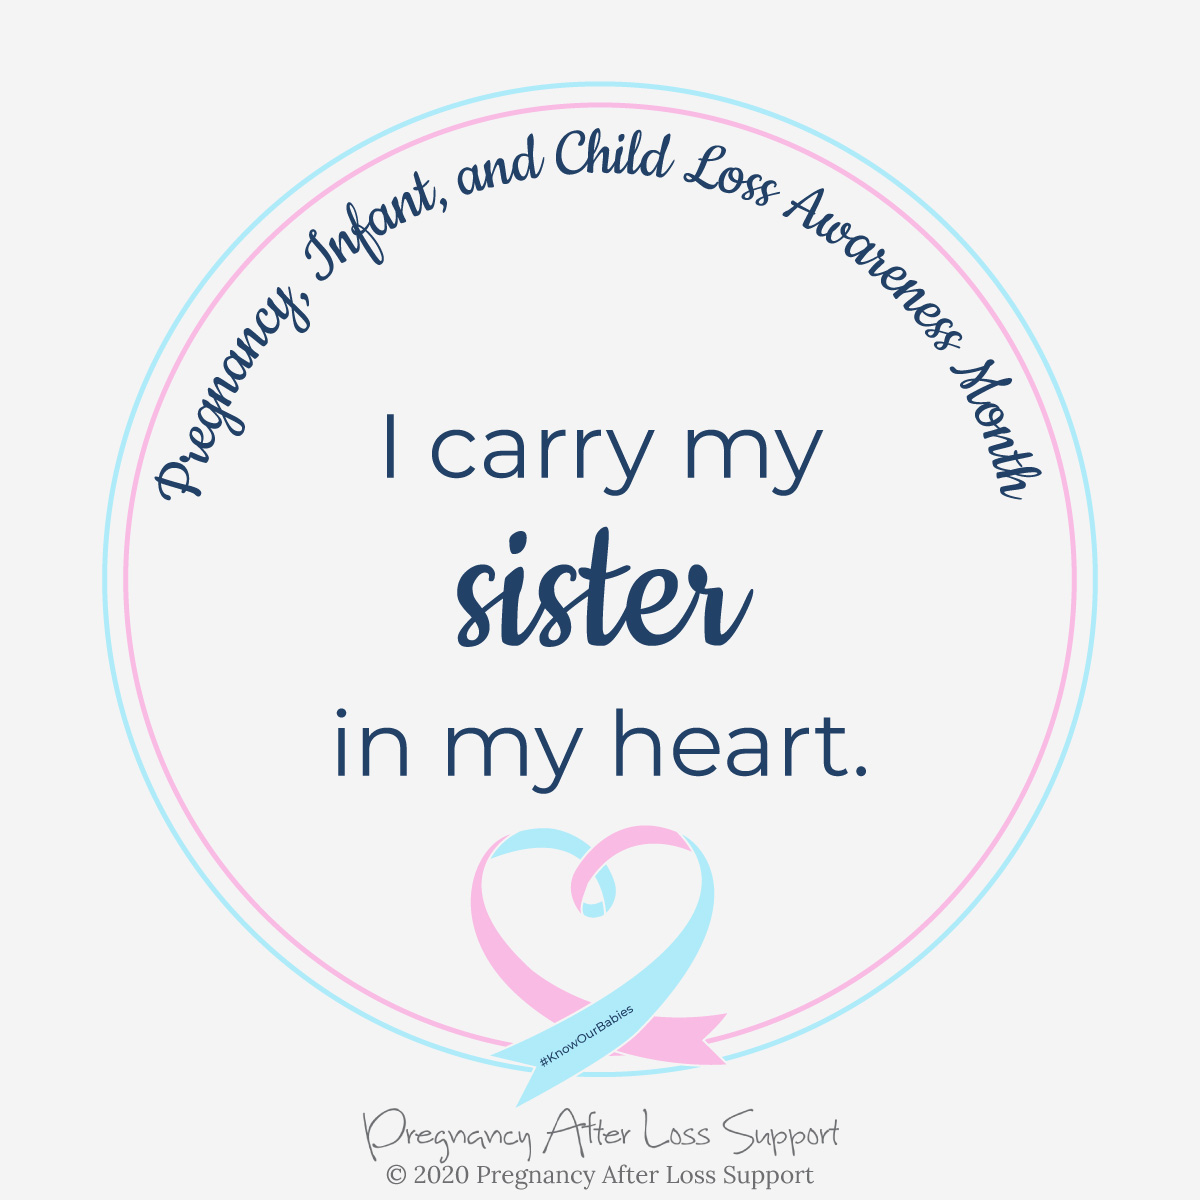 I carry my sister in my heart - Pregnancy, Infant, and Child Loss Awareness Month